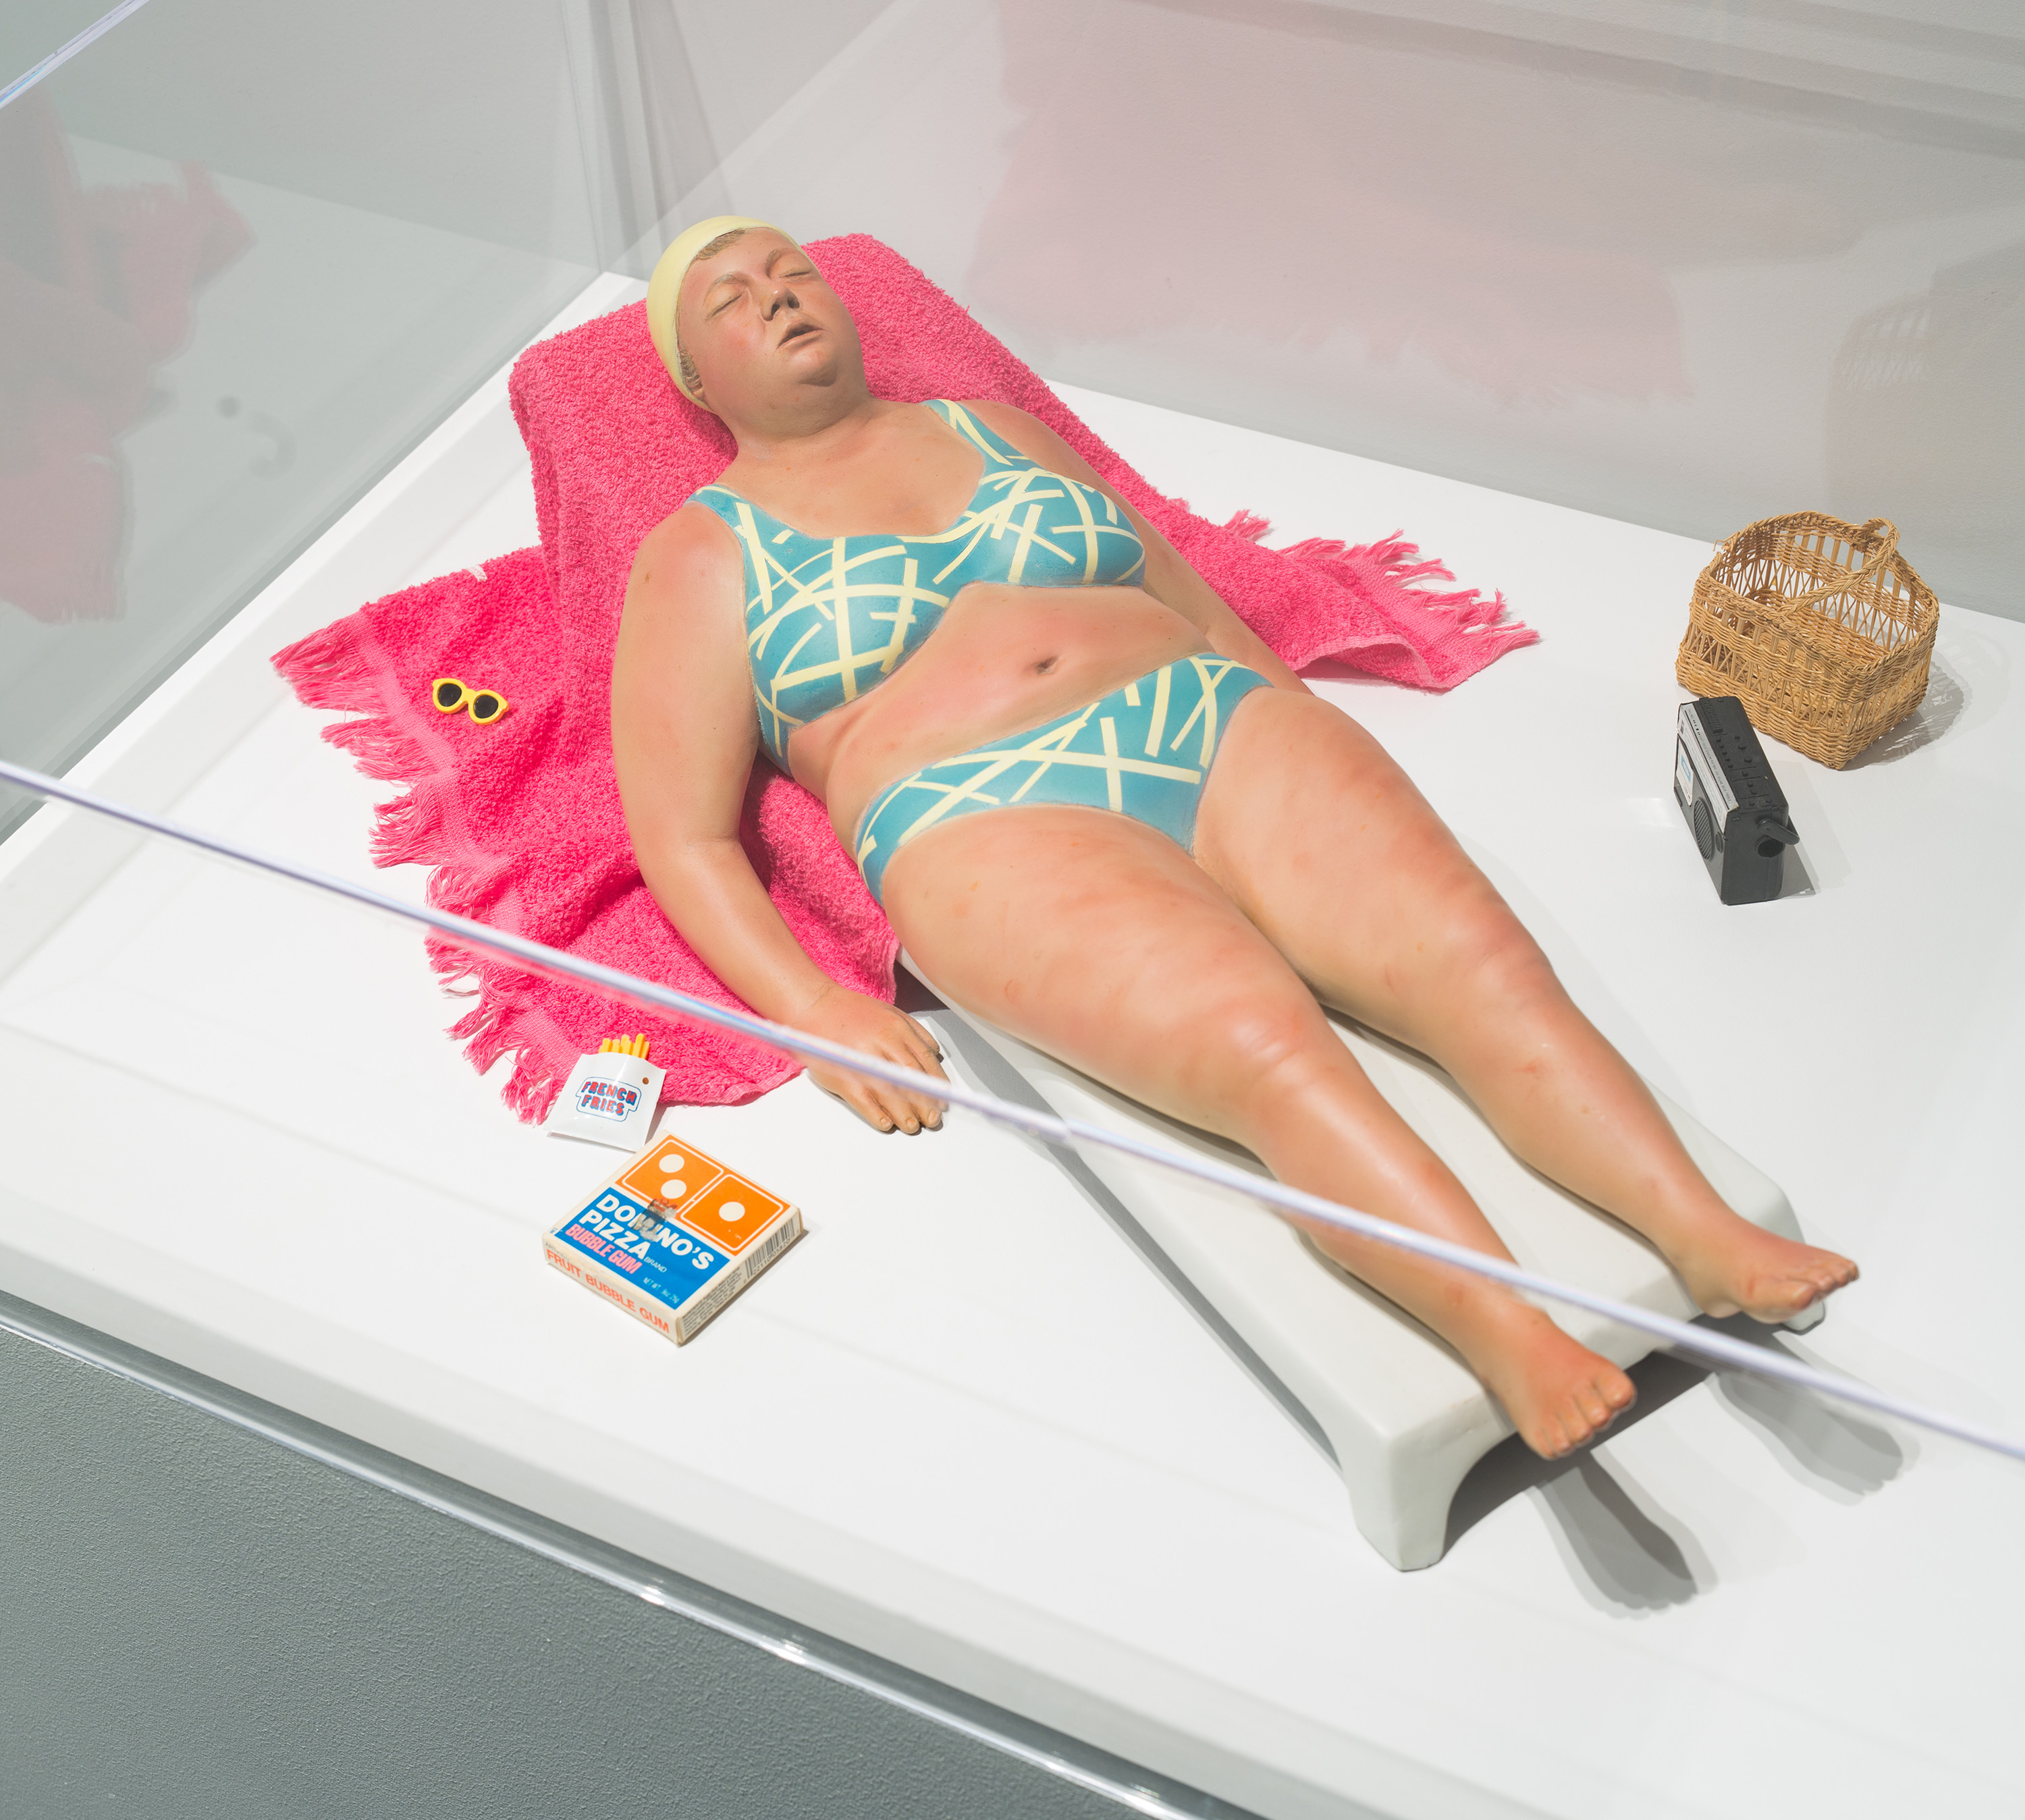 Duane Hanson, <i>Sunbather Study I</i>, 1990, installation view at the Eli and Edythe Broad Art Museum at Michigan State University, 2016. Eli and Edythe Broad Art Museum, Michigan State University, MSU purchase, funded by the Emma Grace Holmes Endowment, the Nellie M. Loomis Endowment in memory of Martha Jane Loomis, and the Office of the Vice President for Research and Graduate Studies. Photo: Eat Pomegranate Photography